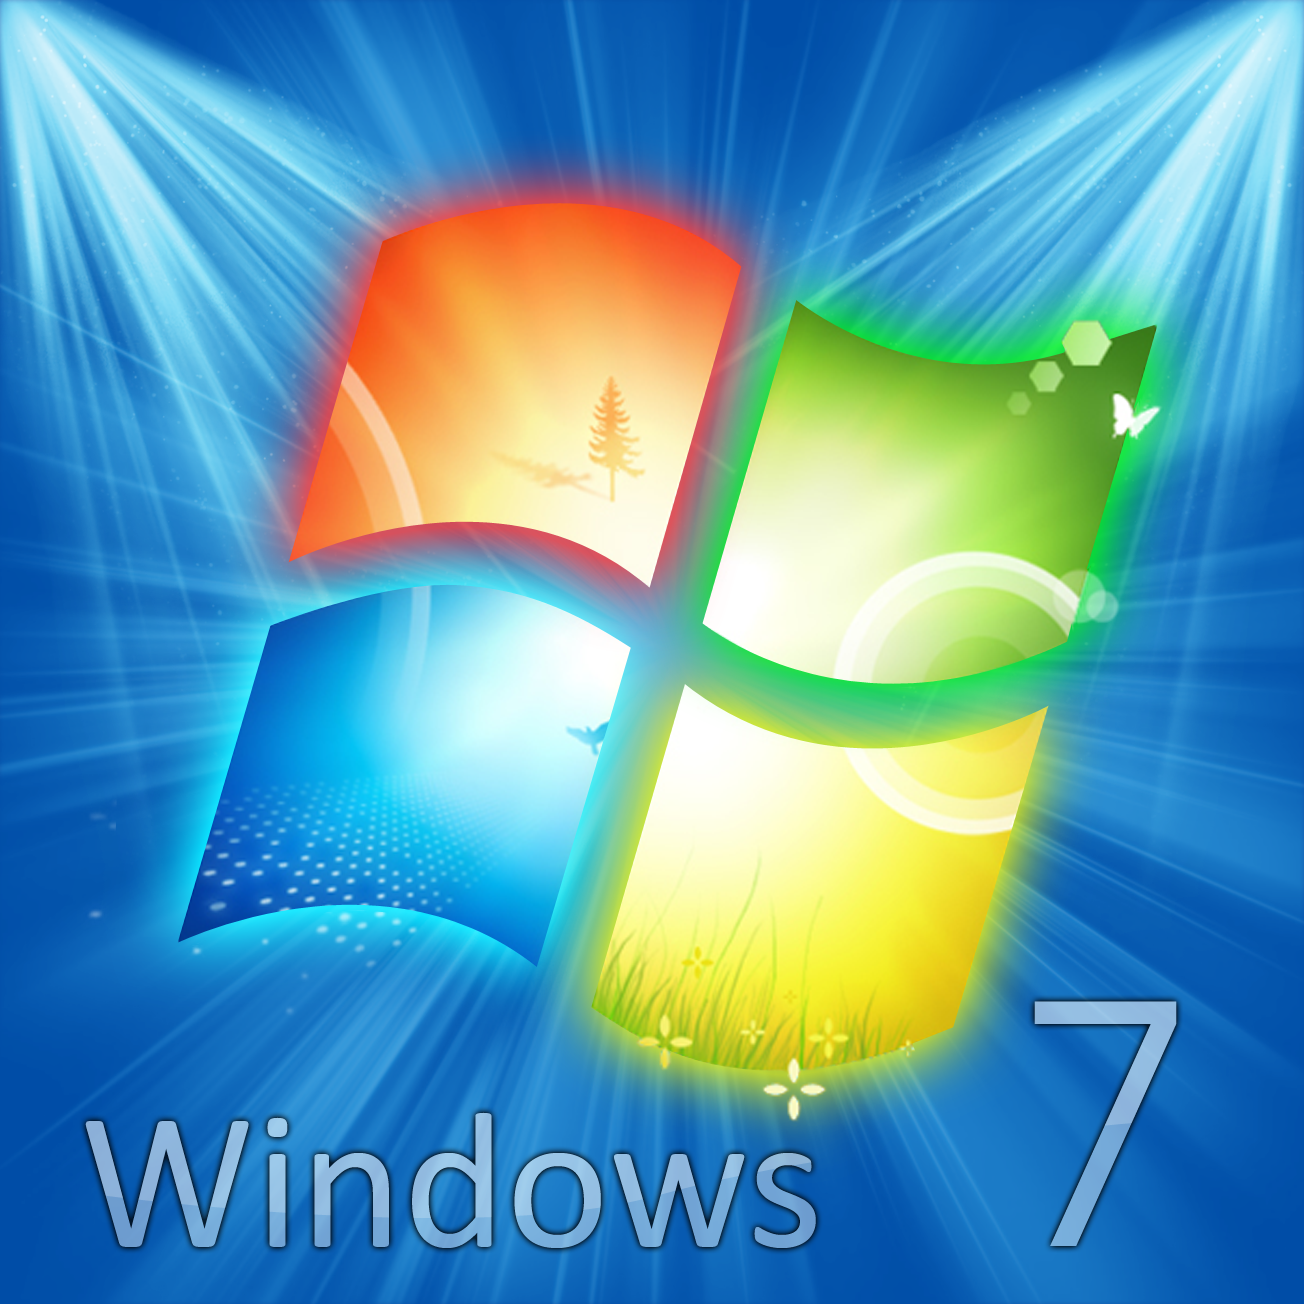 http://1.bp.blogspot.com/-i_E-3be5JKs/T8dp406mIzI/AAAAAAAAA4Q/bGrxwQHOArg/s1600/Windows_7_Gigantic_Logo_by_atti12.png